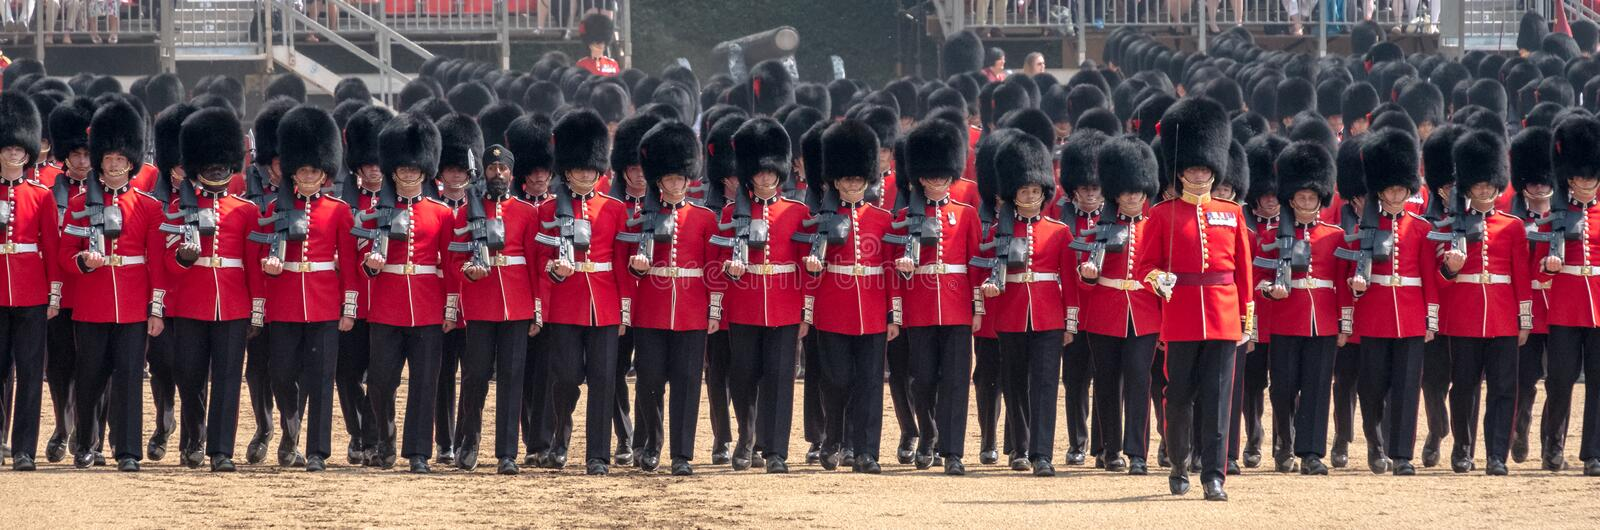 Coldstream Guards at the Trooping the Colour, military ceremony at Horse Guards Parade, London, UK. stock photography